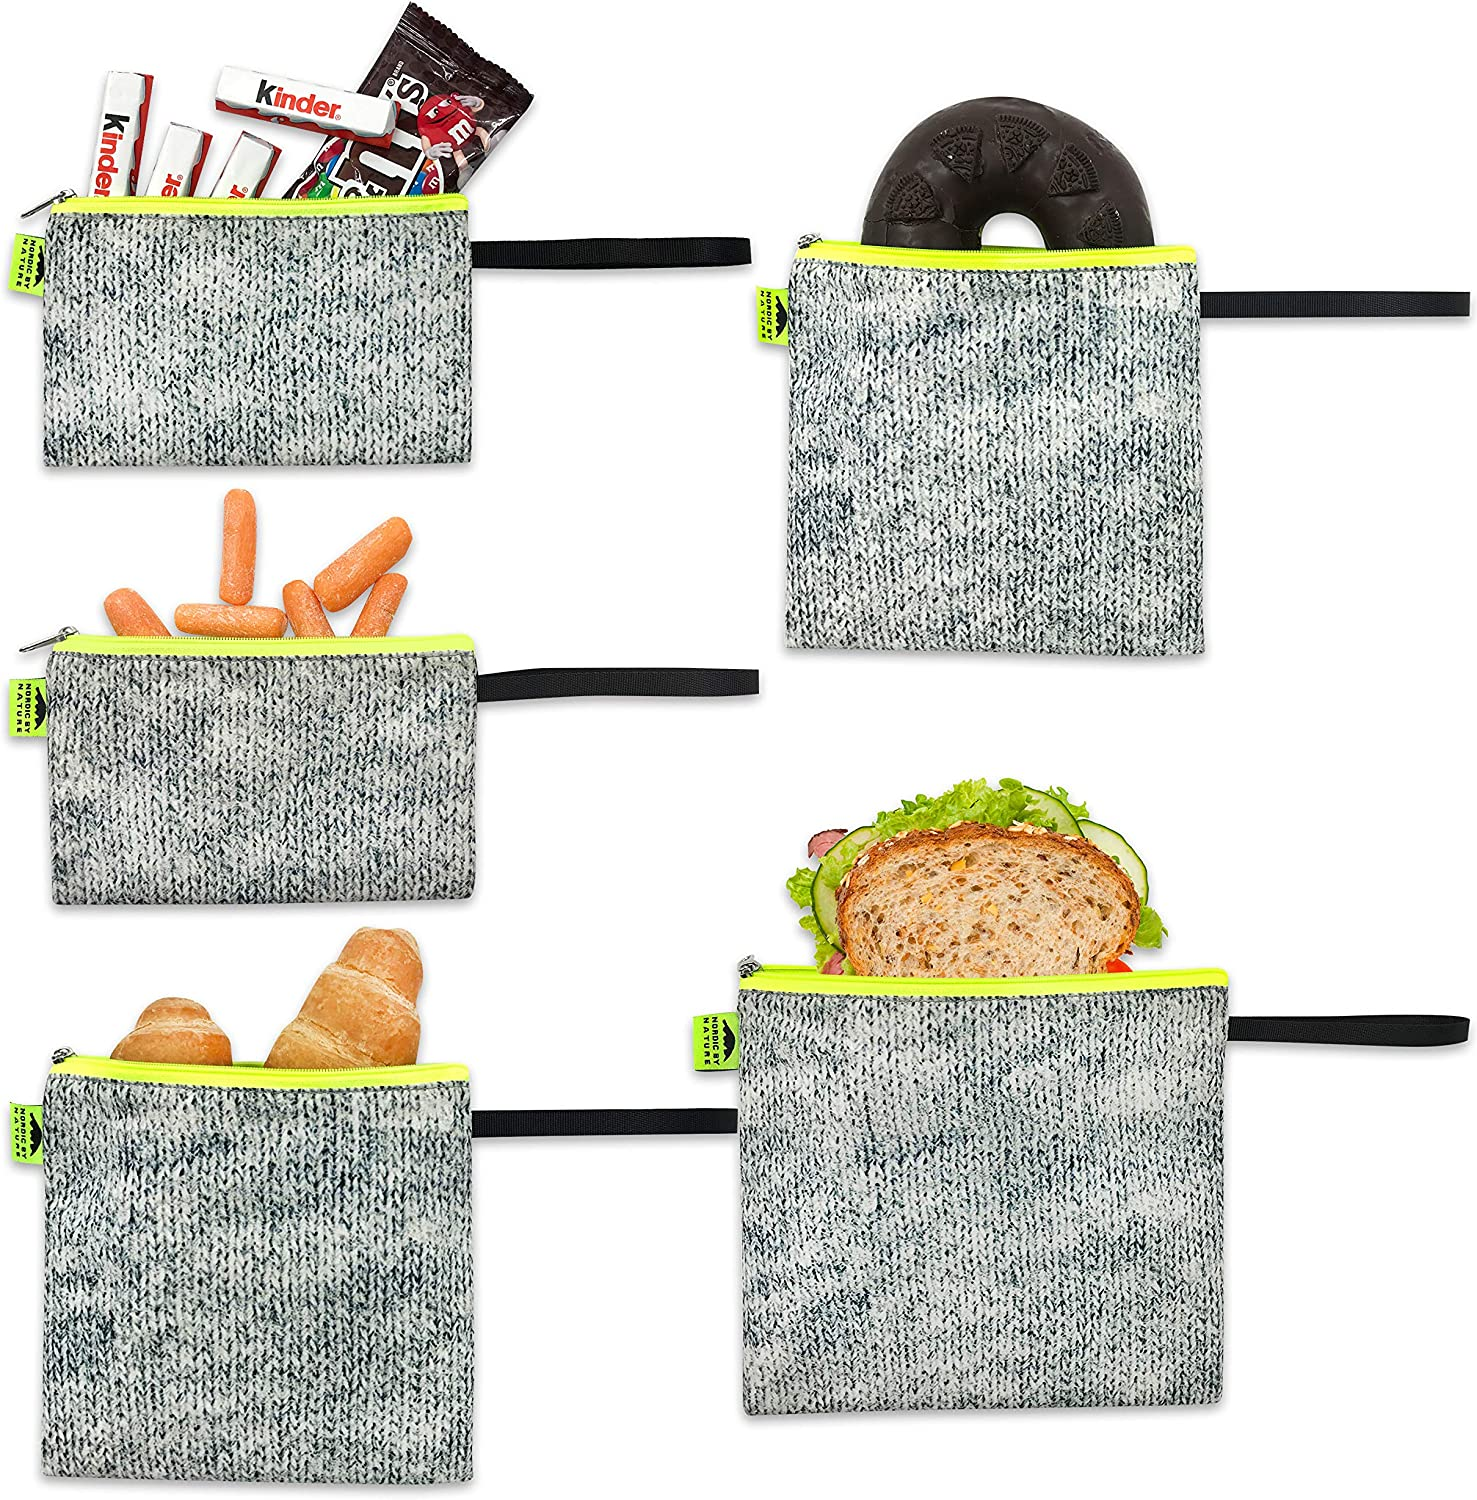 Nordic By Nature Reusable Sandwich Bag Snack Bags - Value Pack of 5 Dual Layer Lunch Baggies - Dishwasher Safe - Eco Friendly Cloth Wraps - Easy Open Zipper For Kids (Grey/Neon)